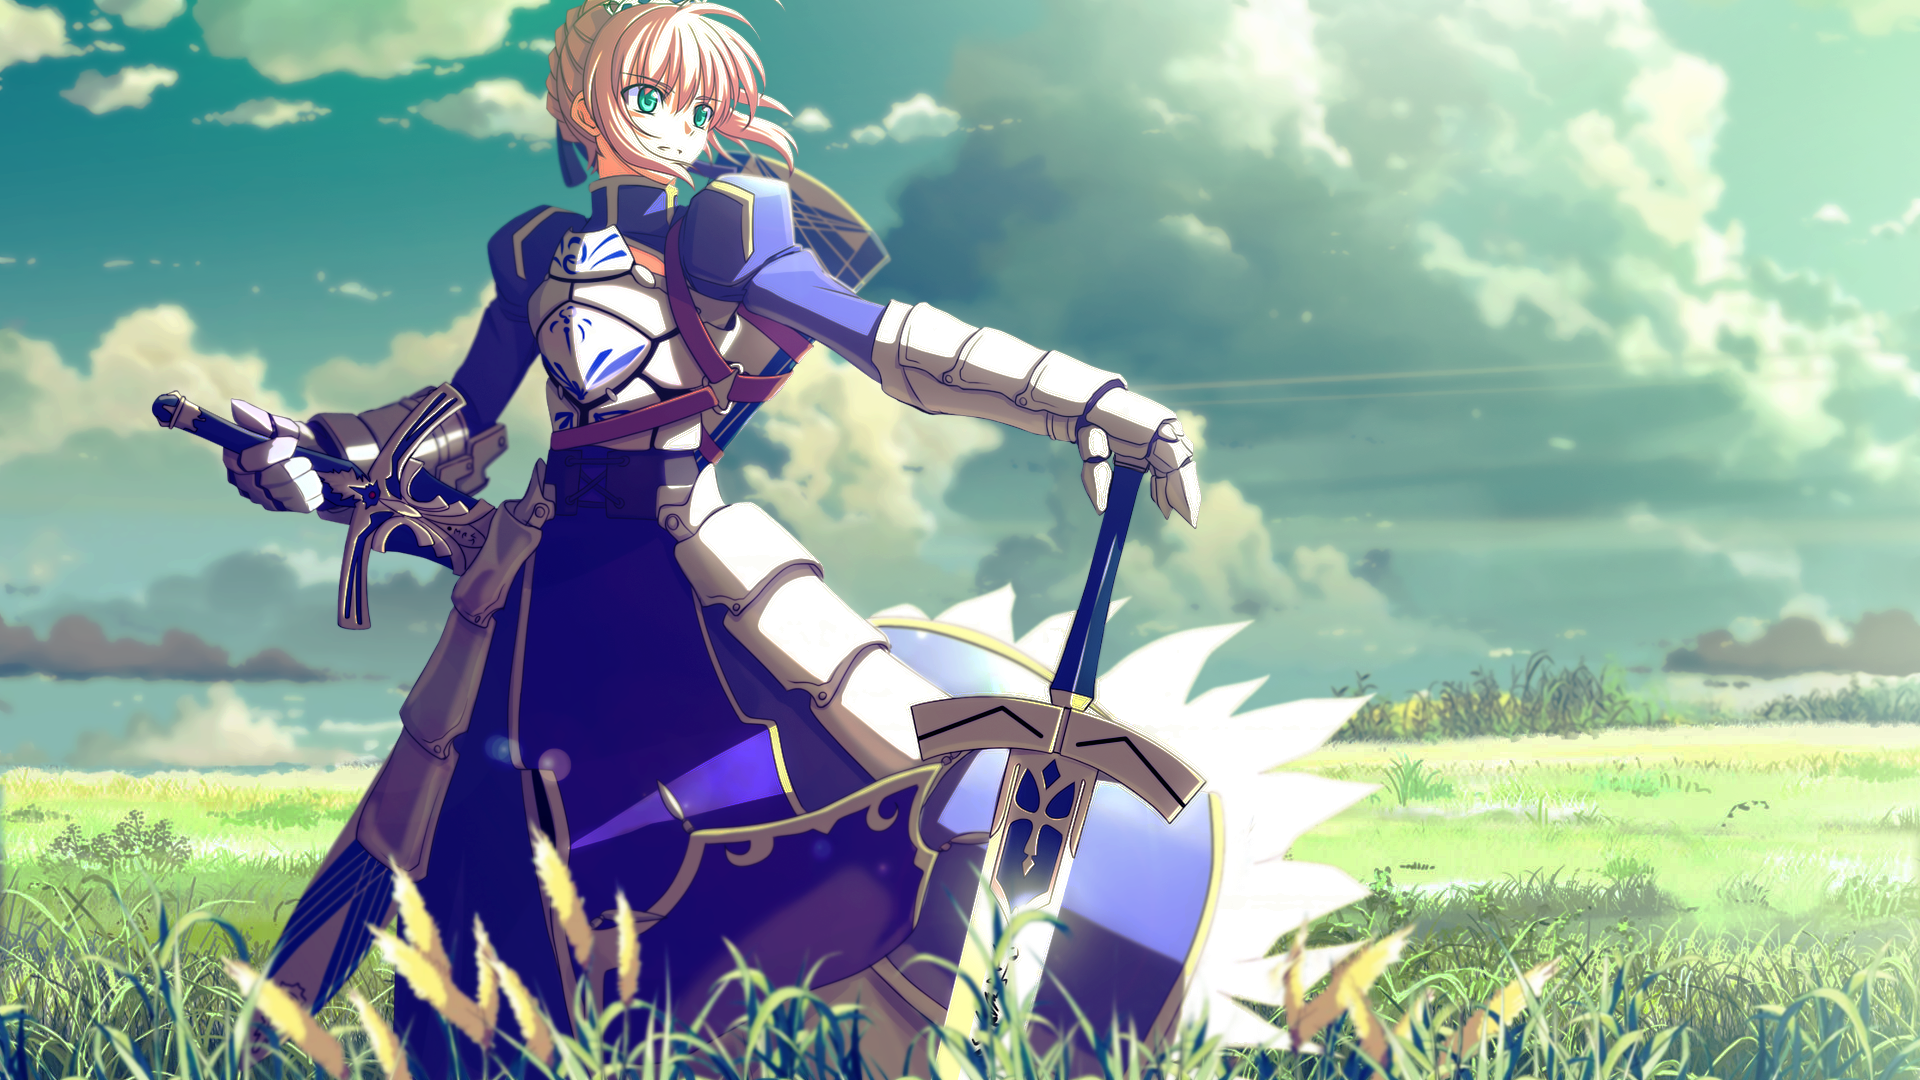 Backgrounds Saber Fate Stay Night Fate Stay Night Fate Anime